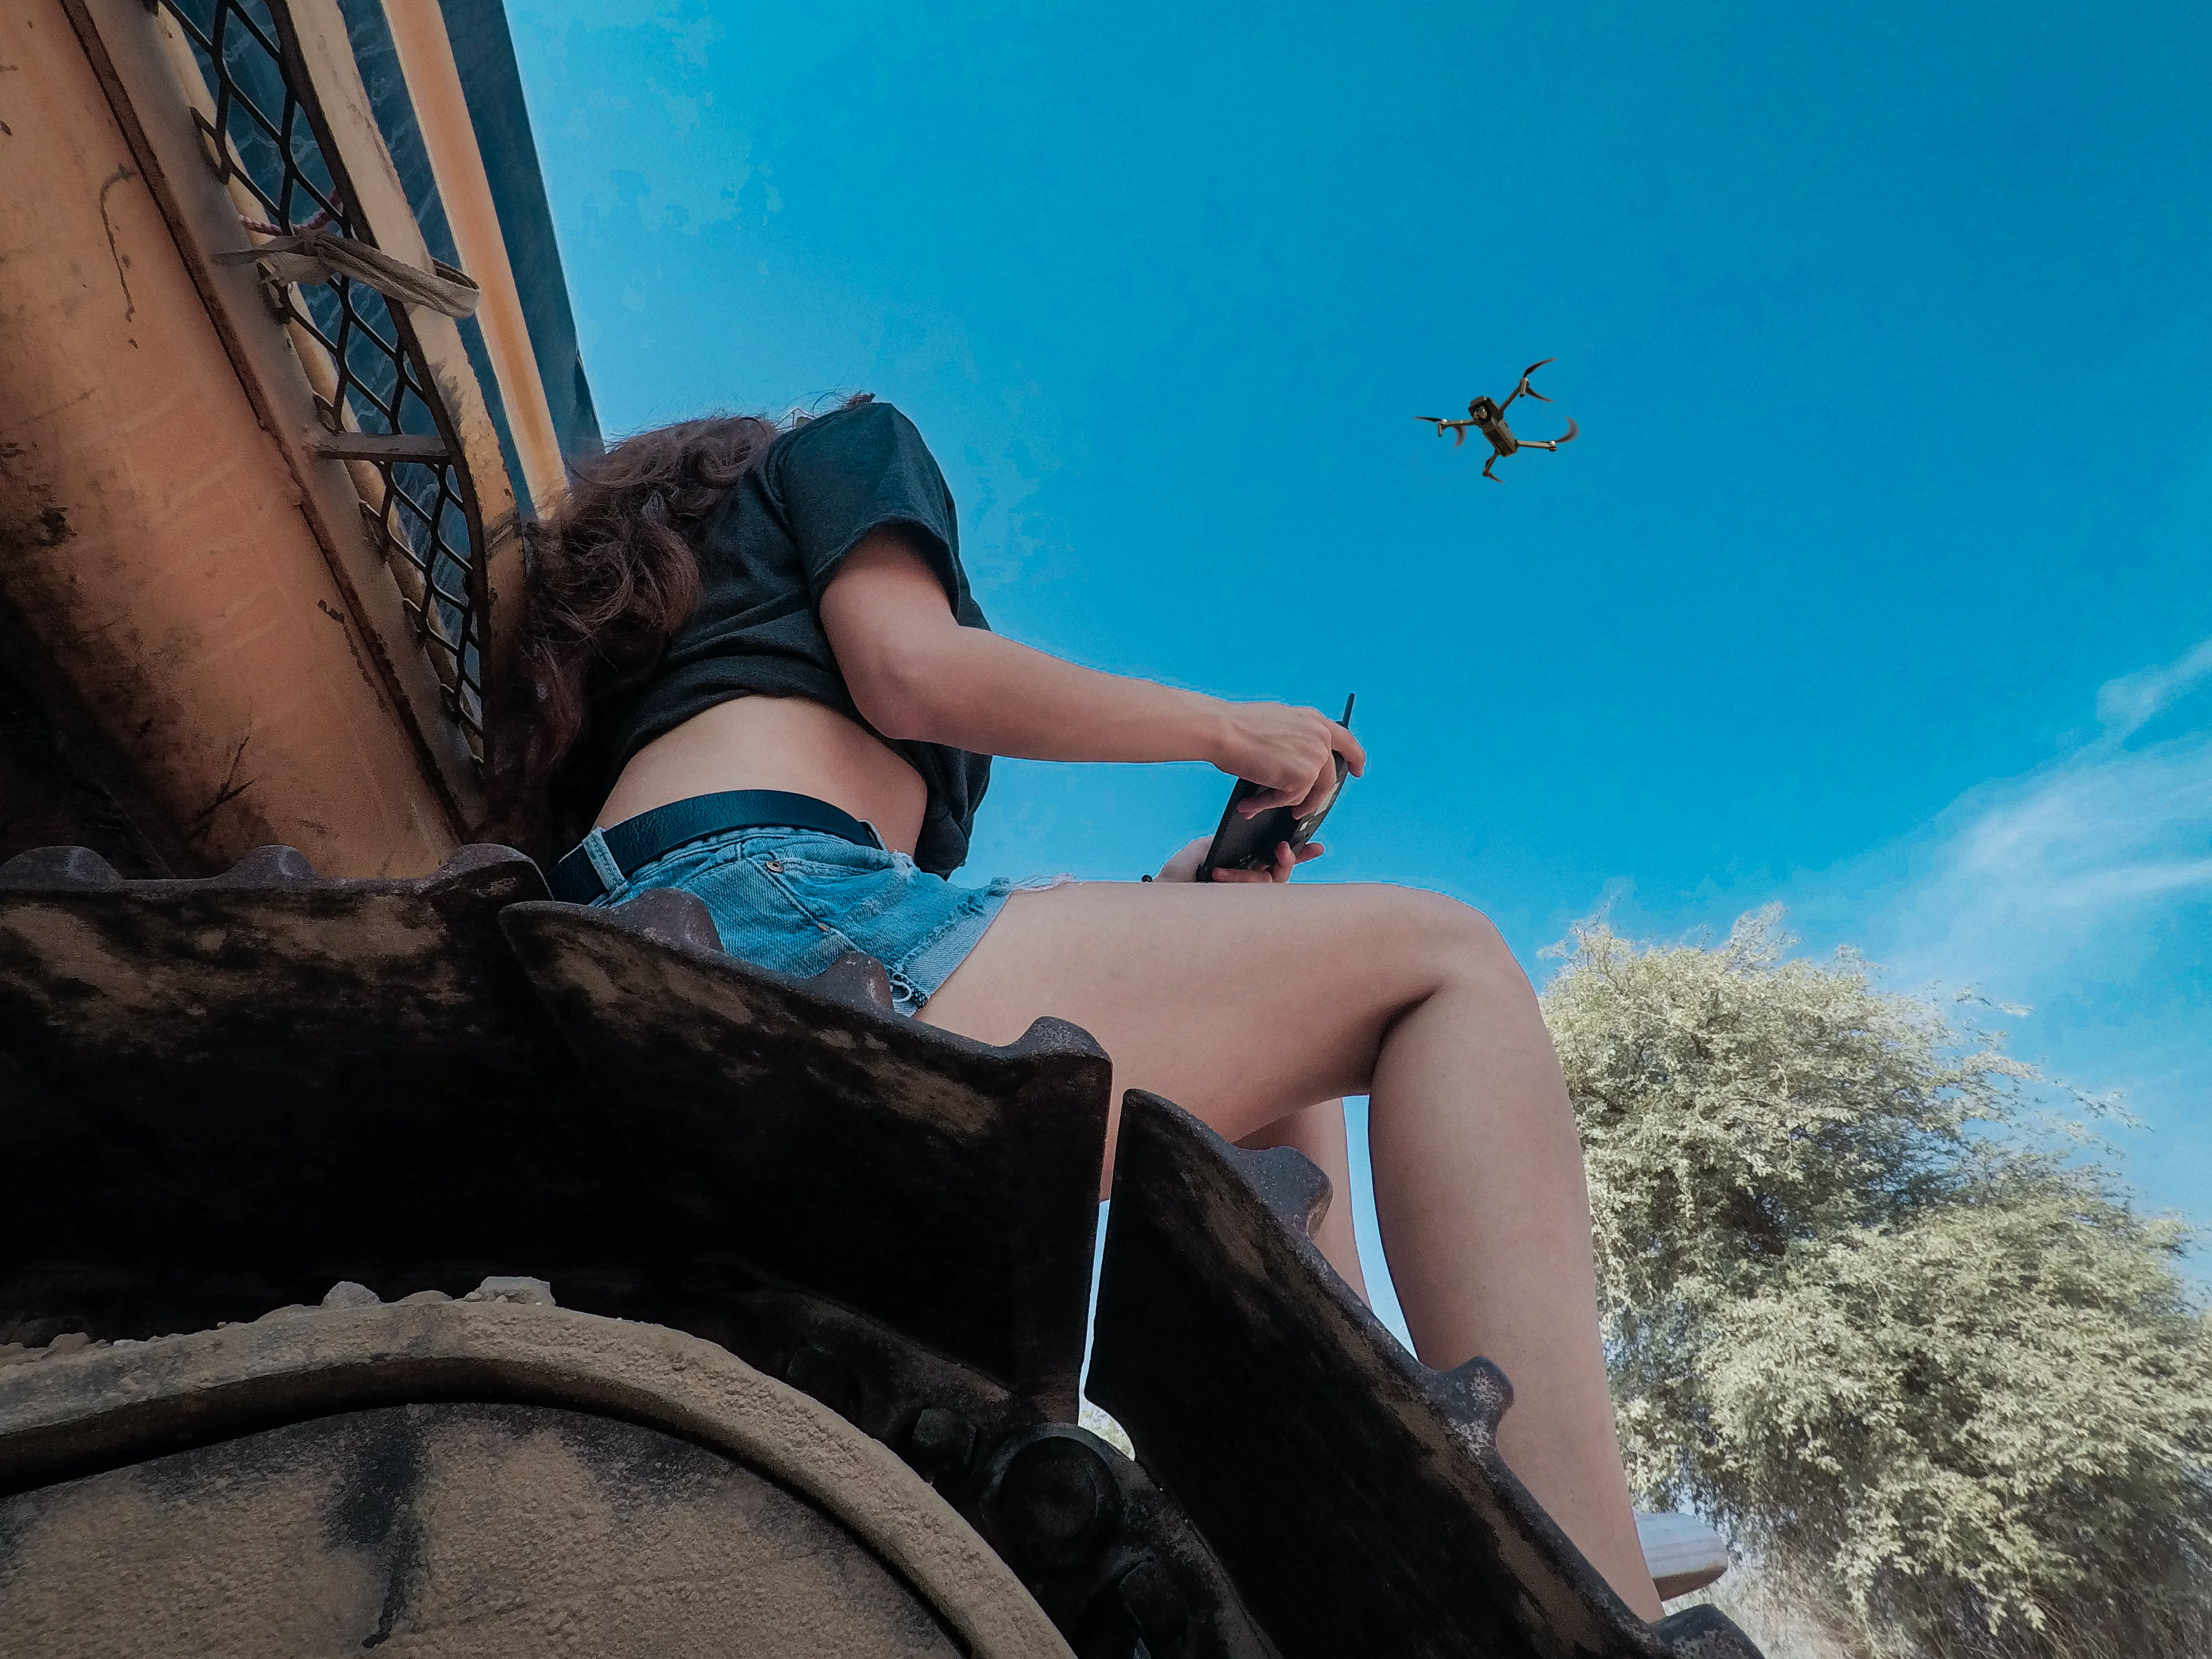 Woman Using Black Quadcopter Drone While Sitting On Roof